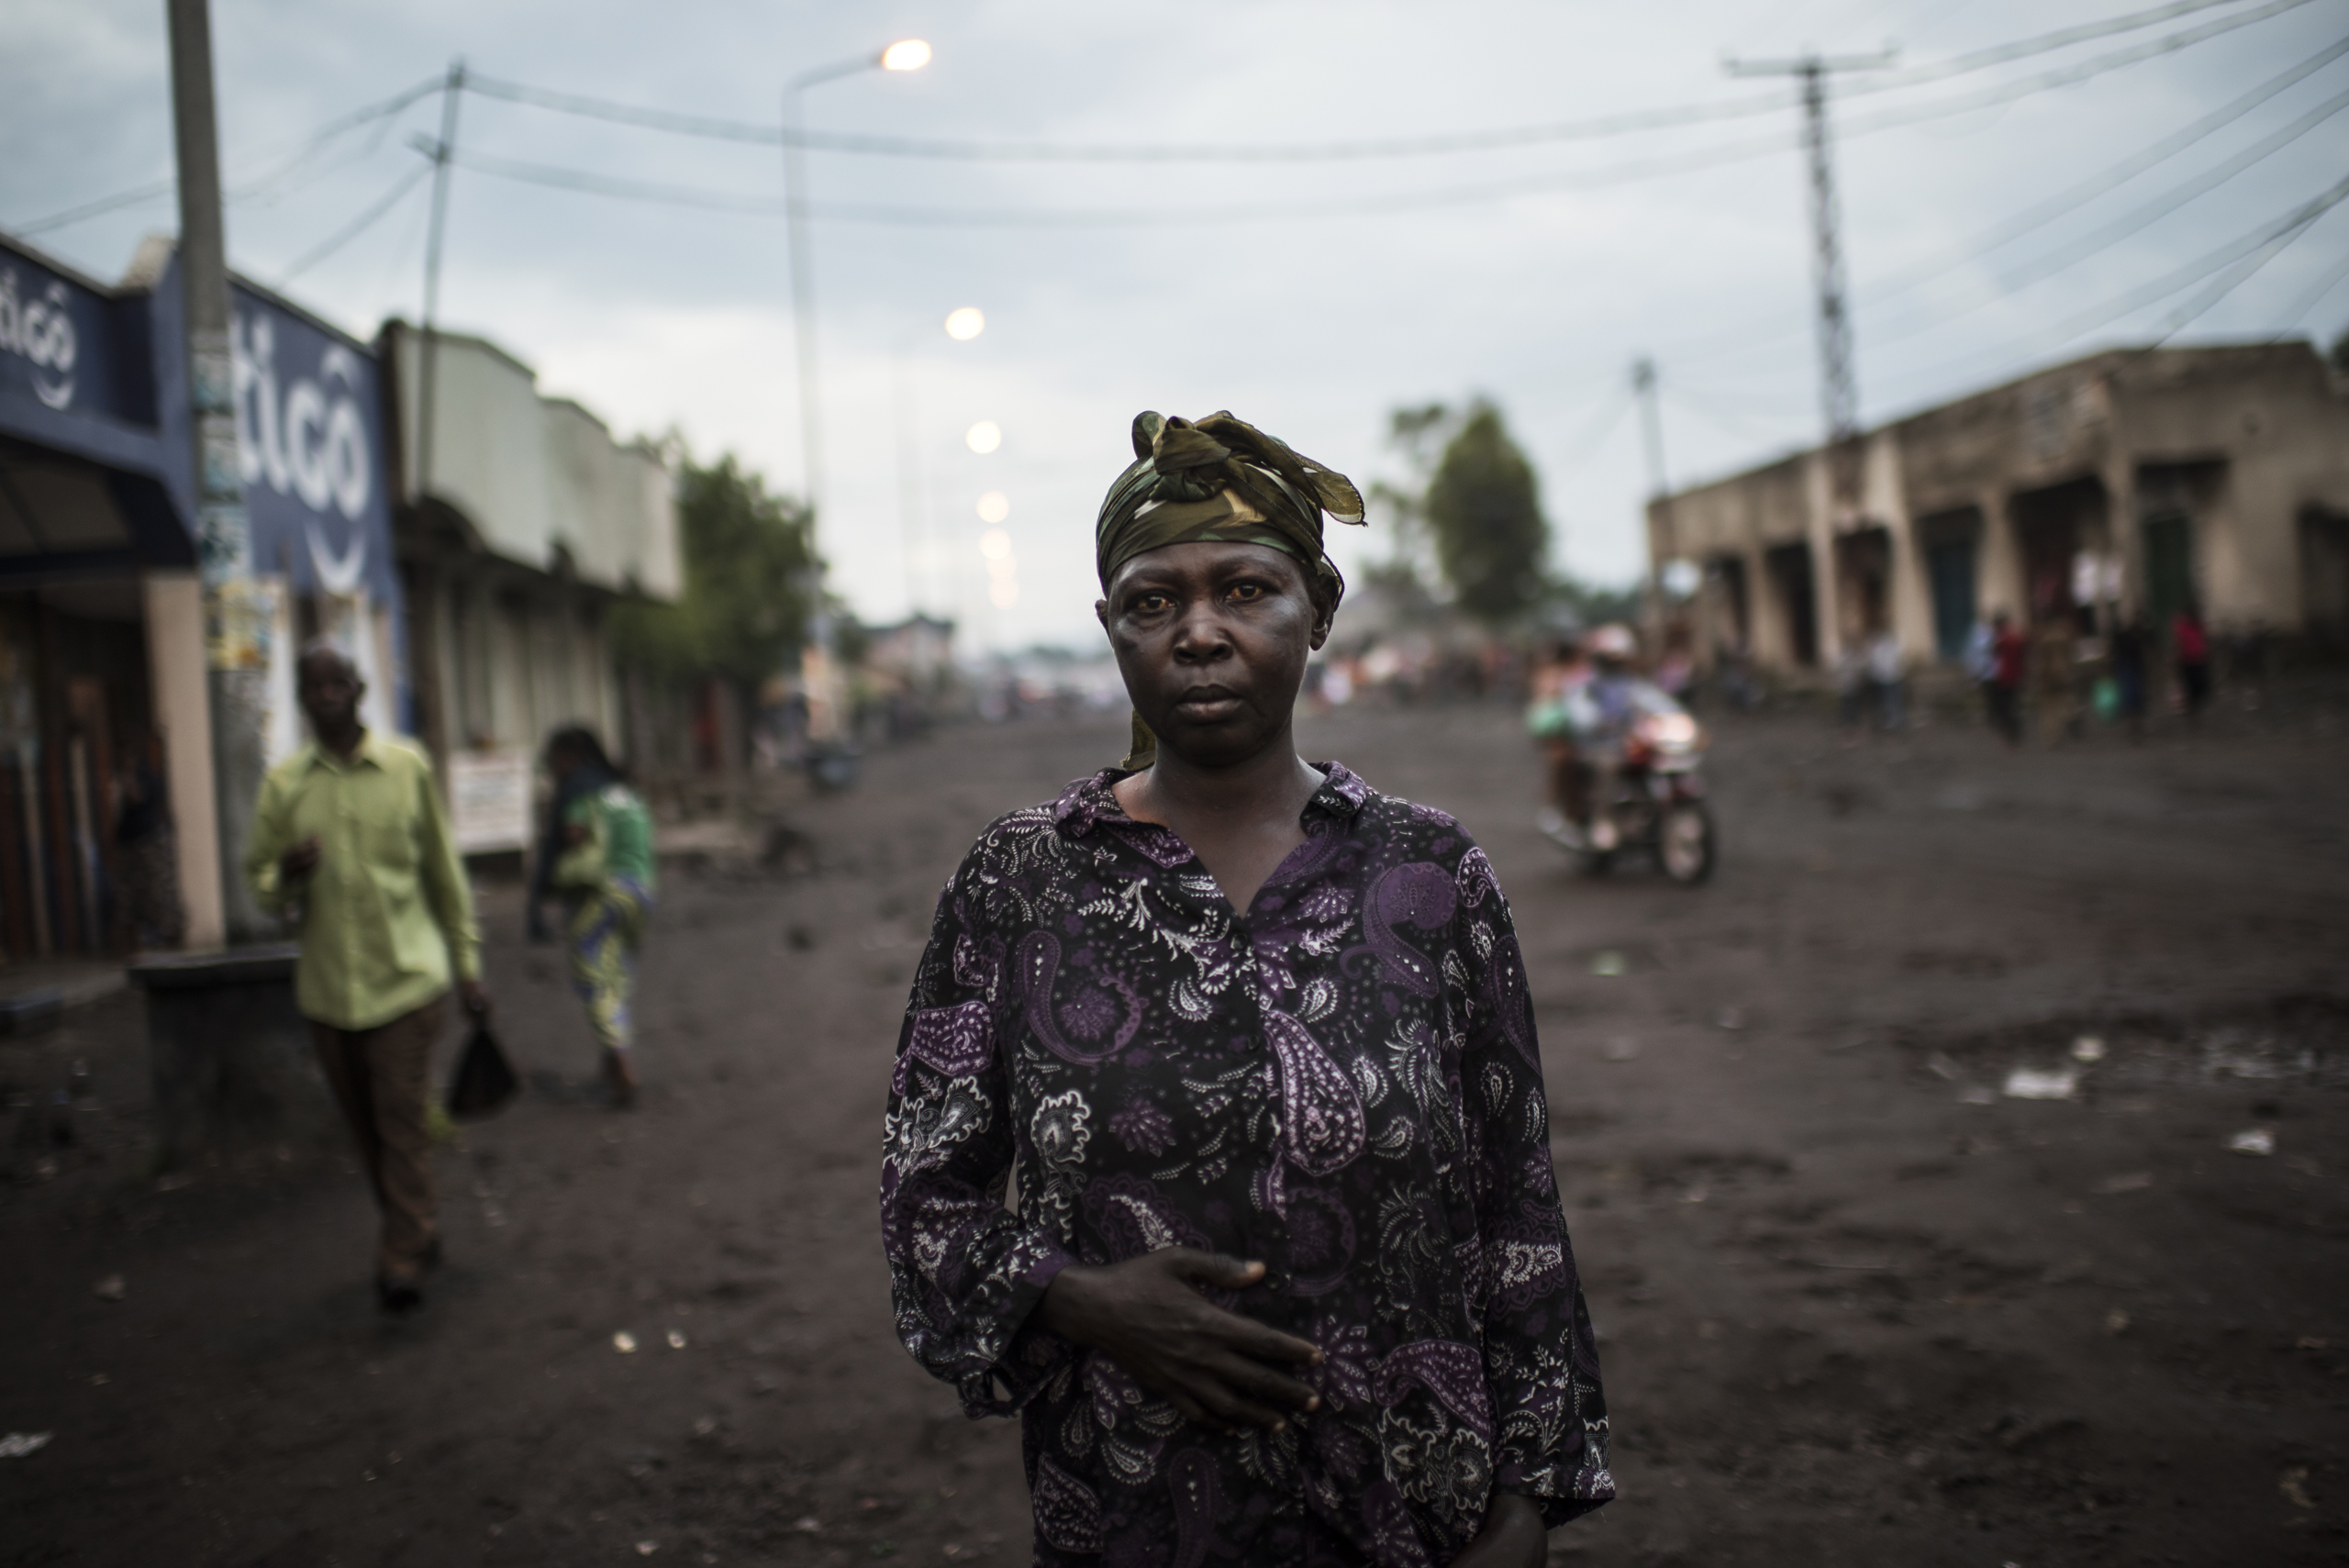 "Josephine Mwamini, 42, was raped in 2010, in her village, Walikali, by soldiers of the Democratic Forces for the Liberation of Rwanda (FDLR), a Hutu rebel group in eastern DRC.They killed her husband and son, and took her to the forest, where they tied her to the ground. Seven different men raped her, and they left her for dead. Her neighbors found her  and sent her to Goma to the HEAL Africa Hospital, where she stayed for two years, getting multiple fistula surgeries.She went back home in 2012, but then, in June 2015, armed men attacked her village again. The soldiers raped her multiple times, and once again she was taken to Heal Africa for surgery, where she learned that she had been infected with HIV. She has three daughters ages nine to 19, alone in the village and  fears that something might happen to them. ""They rape any women they find, they don't care about the age, how old or young they might be. They rape whoever is in their path."""